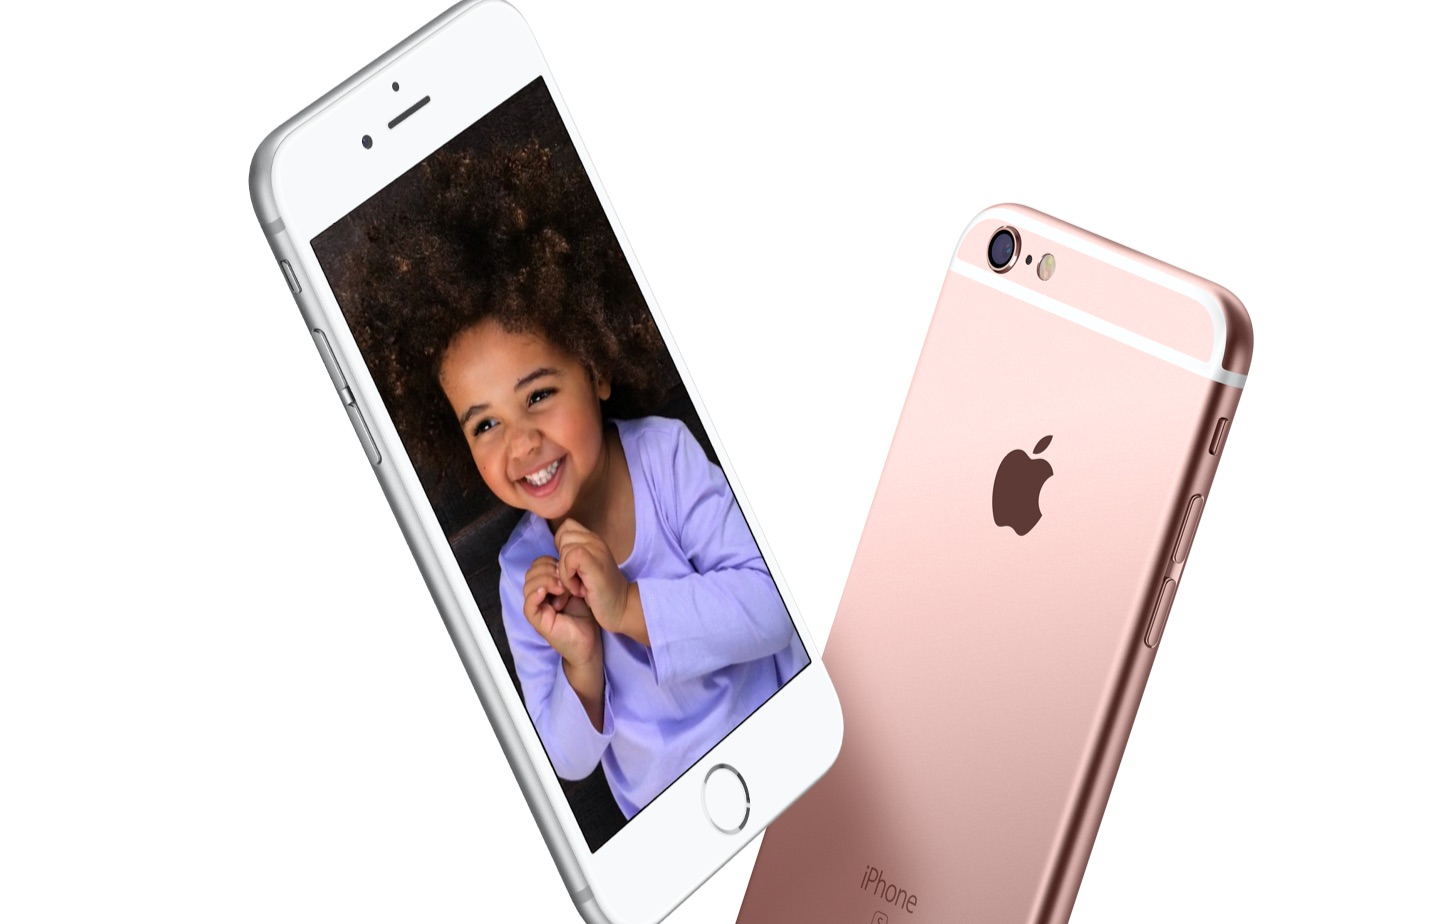 The iPhone 6s lands early for one AT&T customer